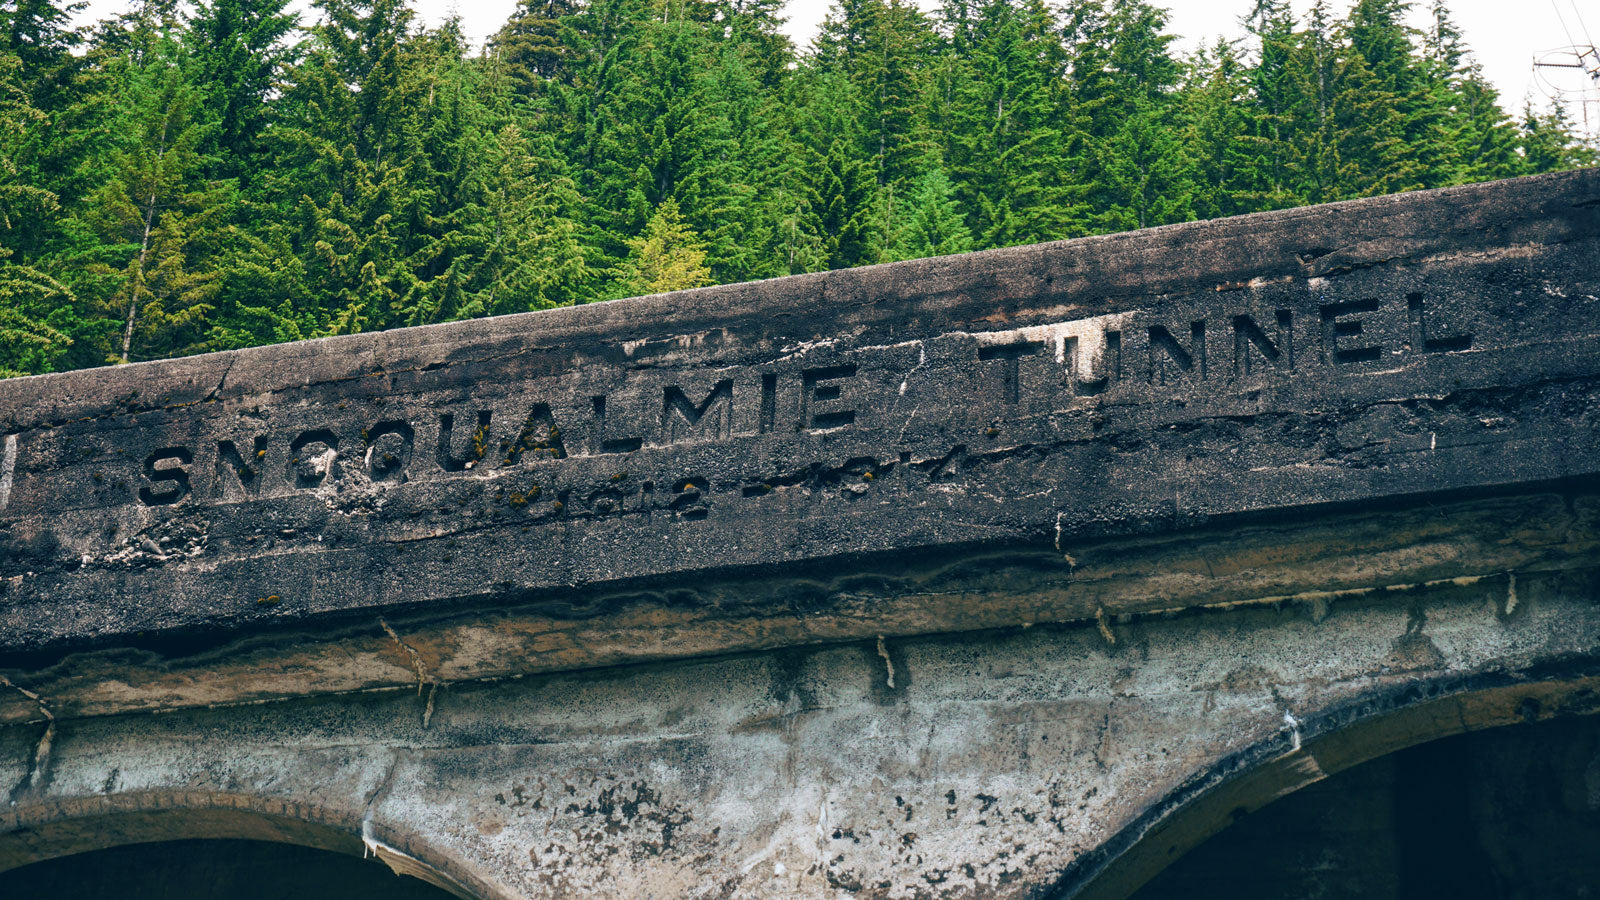 Six Attractions in Washington - Snoqualmie Tunnel